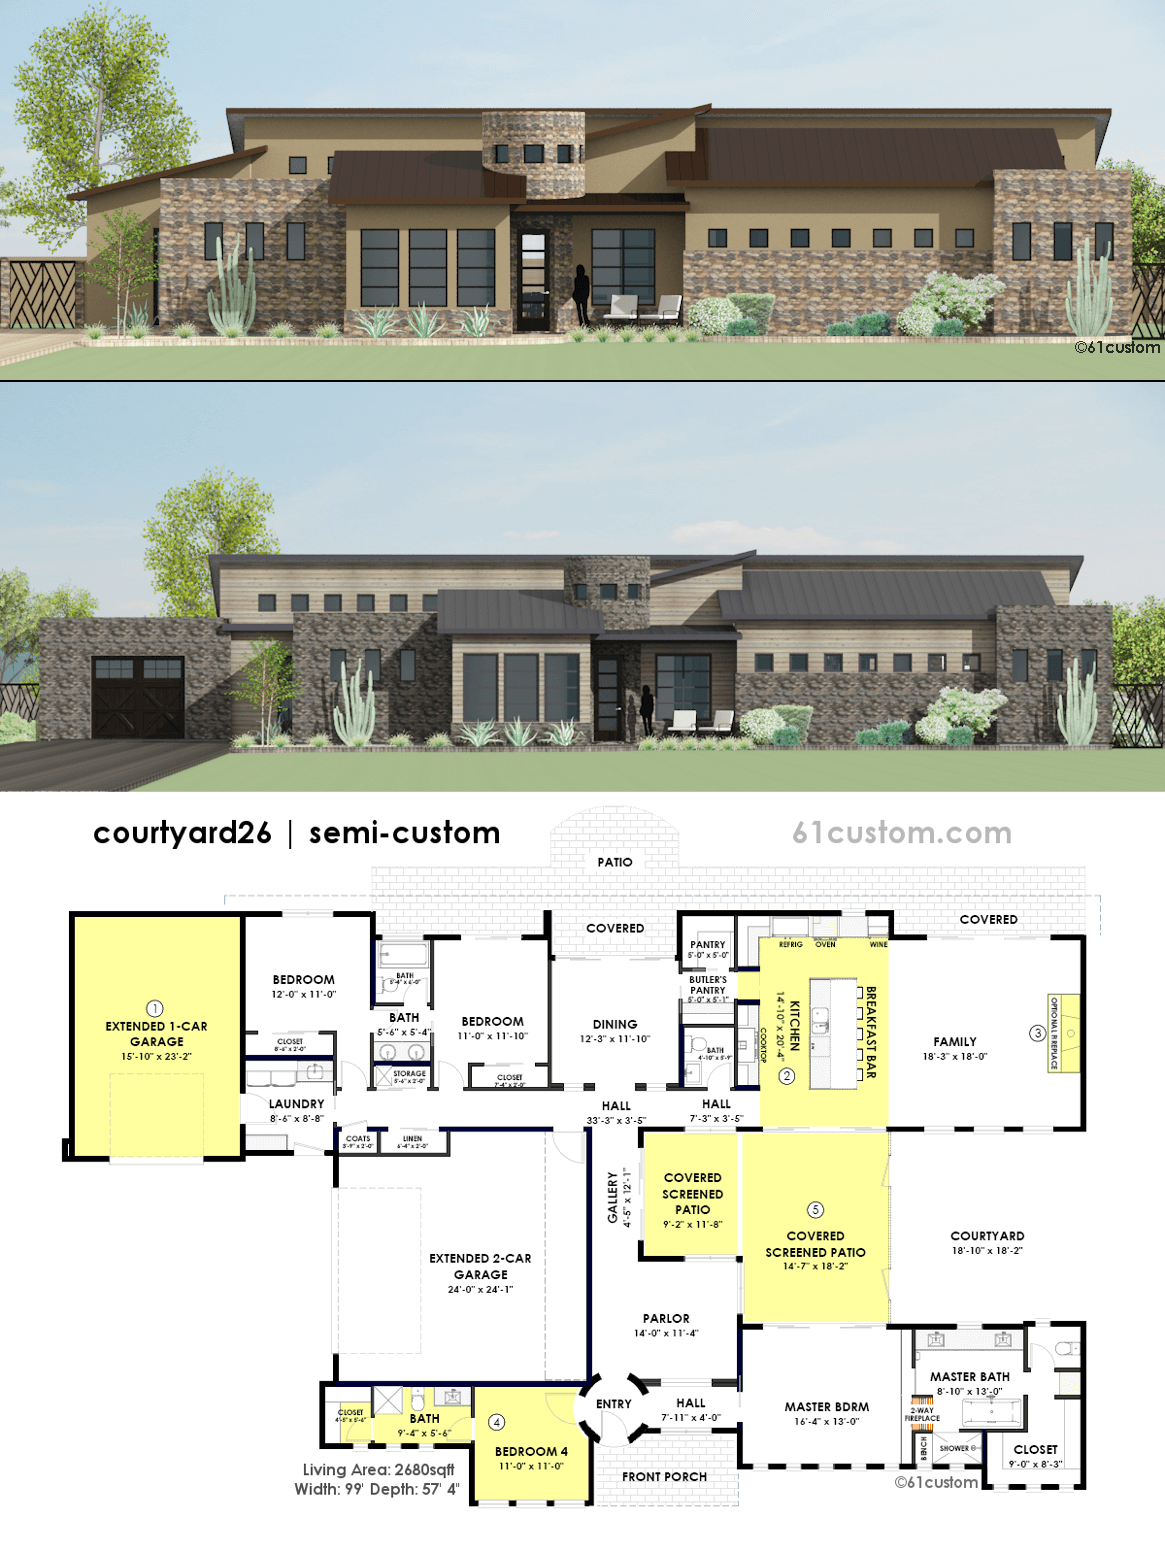 Contemporary side courtyard house plan 61custom for Contemporary home blueprints